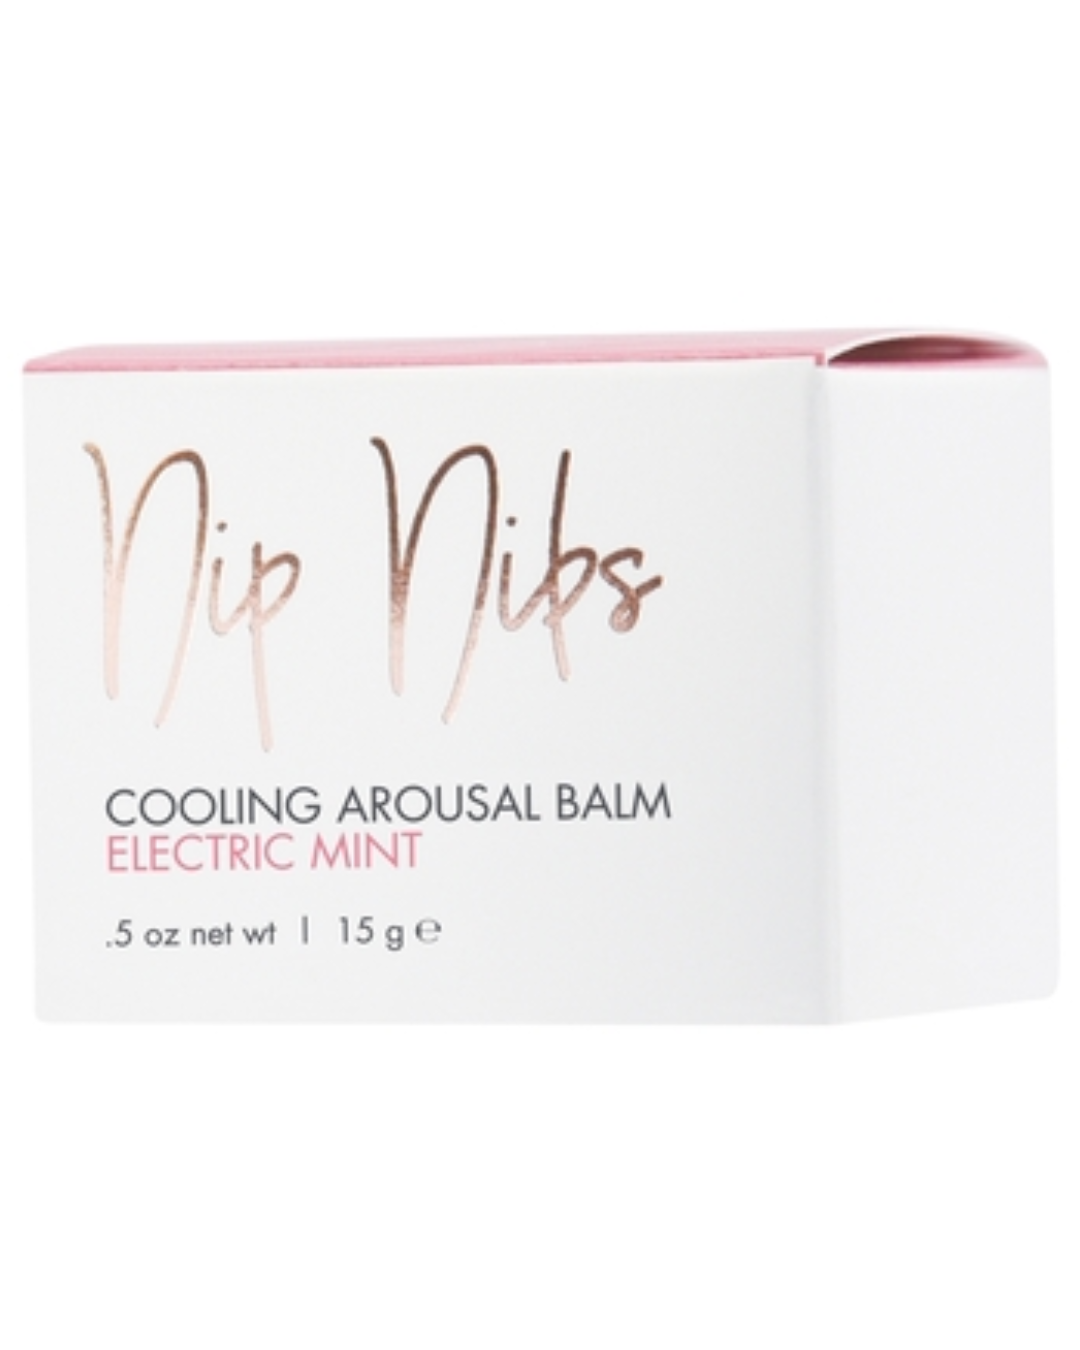 CG Nip Nibs Cooling Arousal Balm .5 oz - Electric Mint box